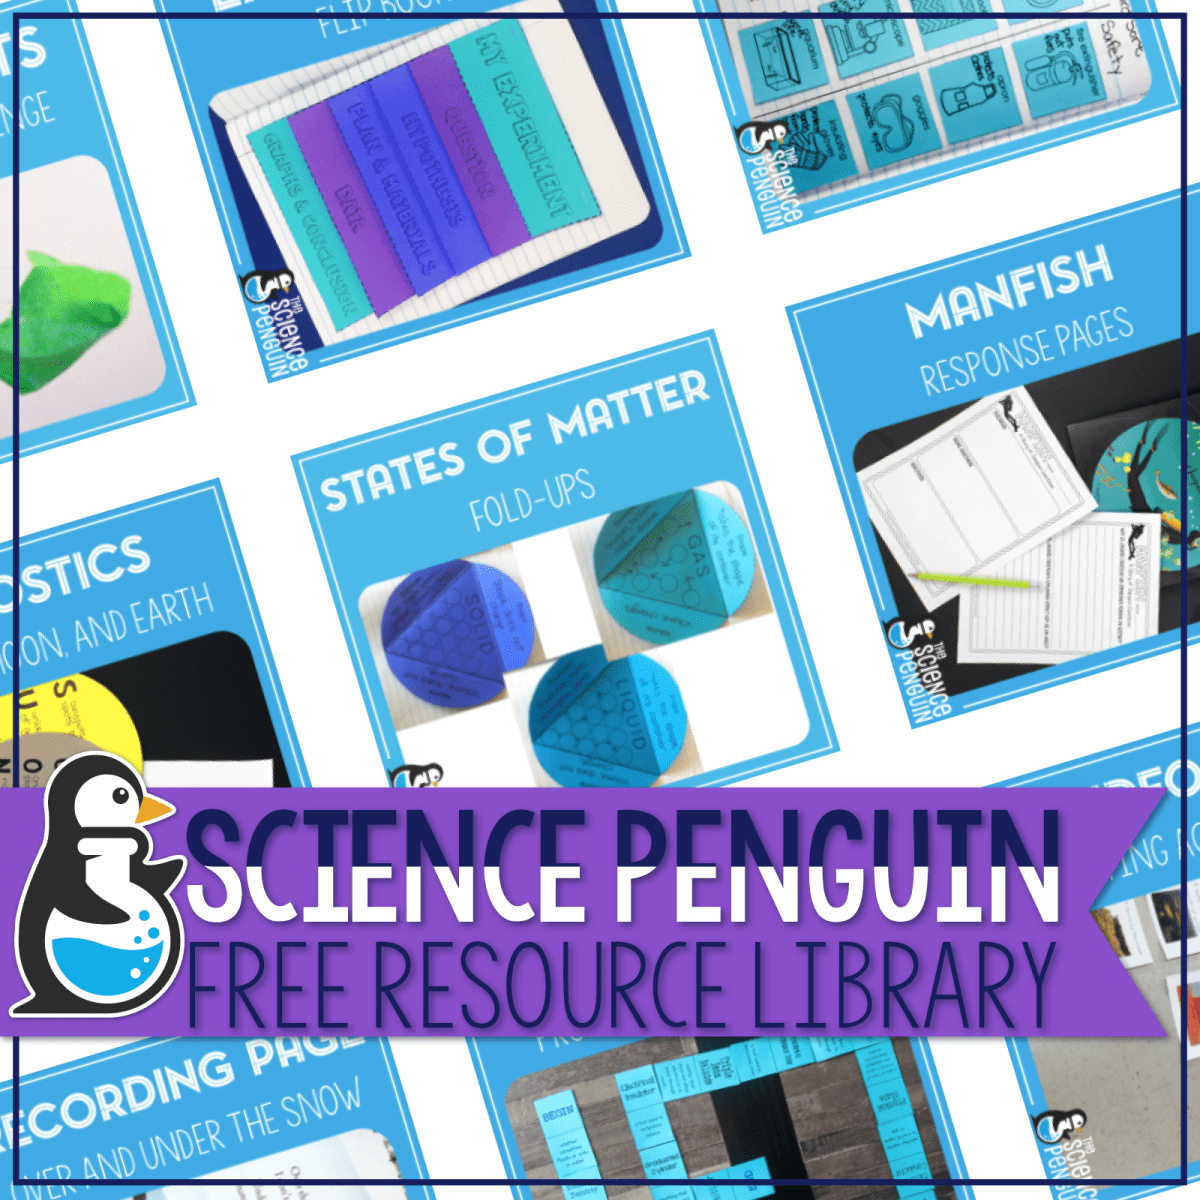 The Science Penguin Free Resource Library